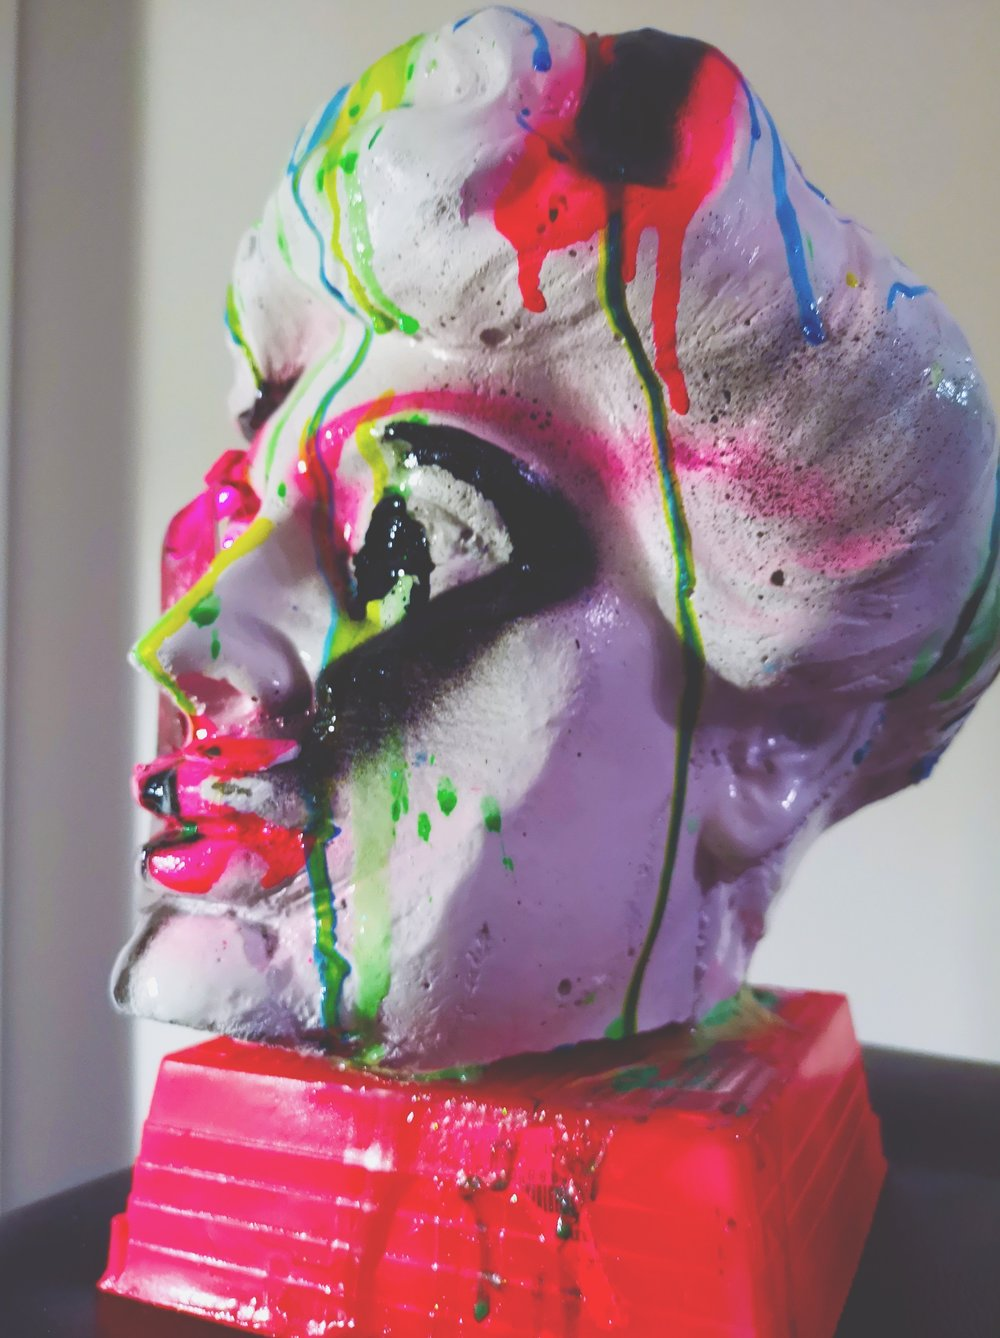 6. LORD MEXA - Want to own a truly unique piece of art? Abstract pop artist Lord Mexa specializes in mixed media compositions and sculptures. Lord created this stunning sculpture titled